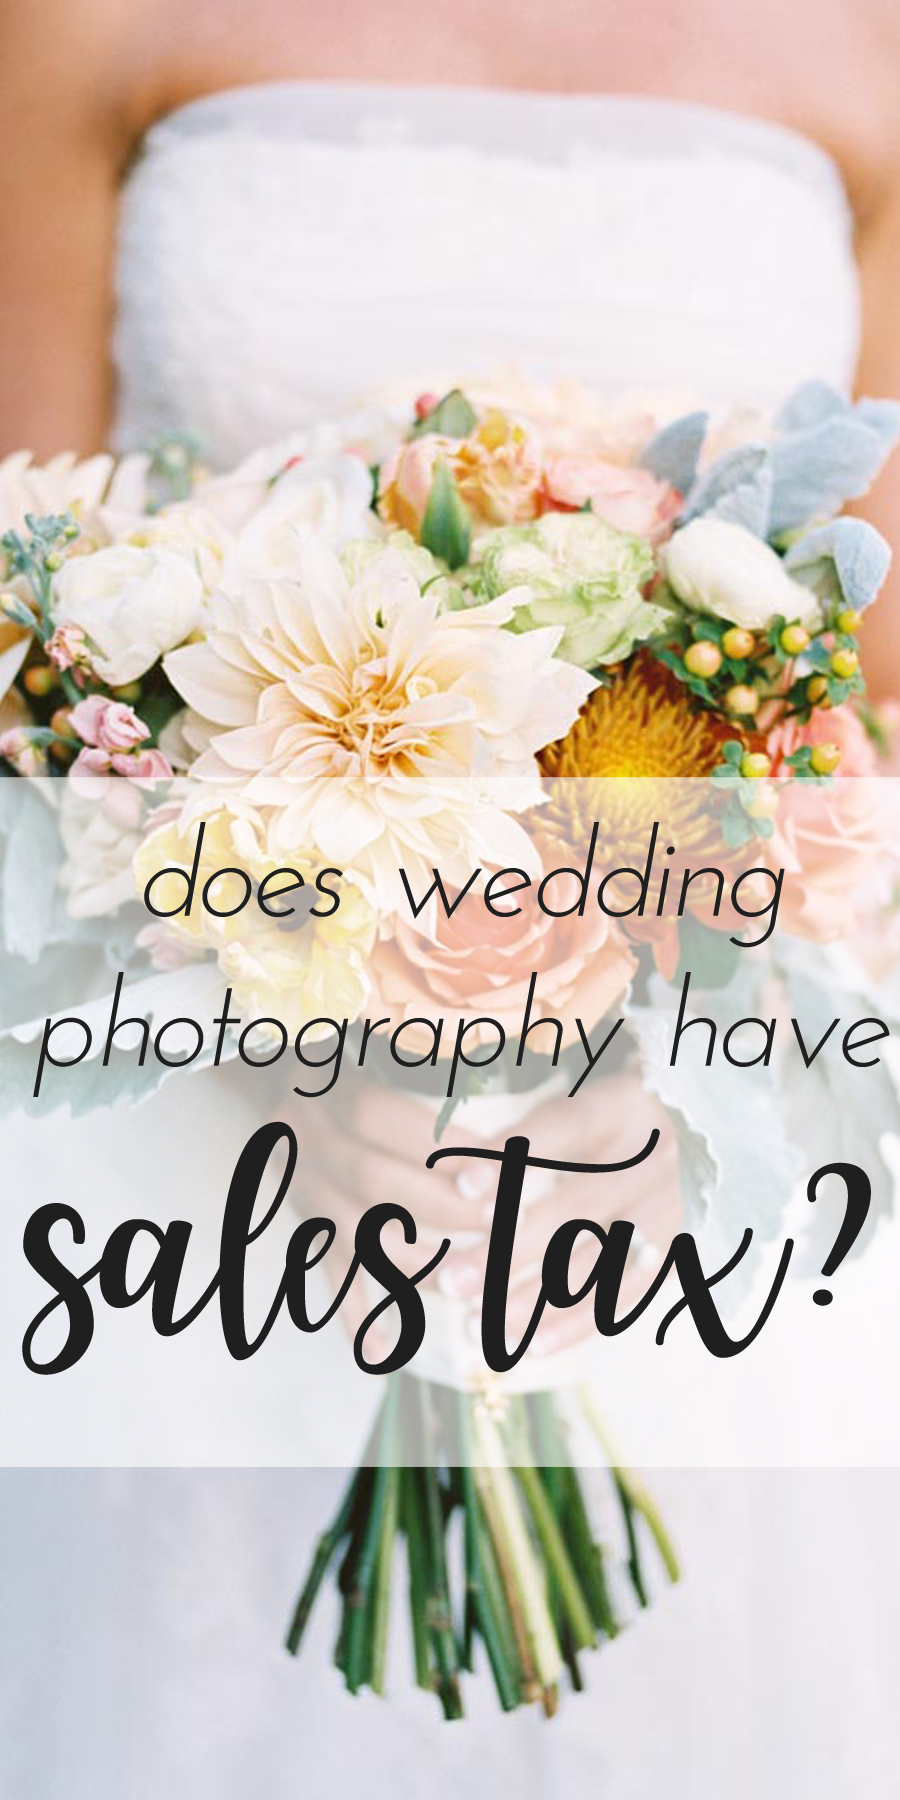 sales tax on wedding photography.jpg